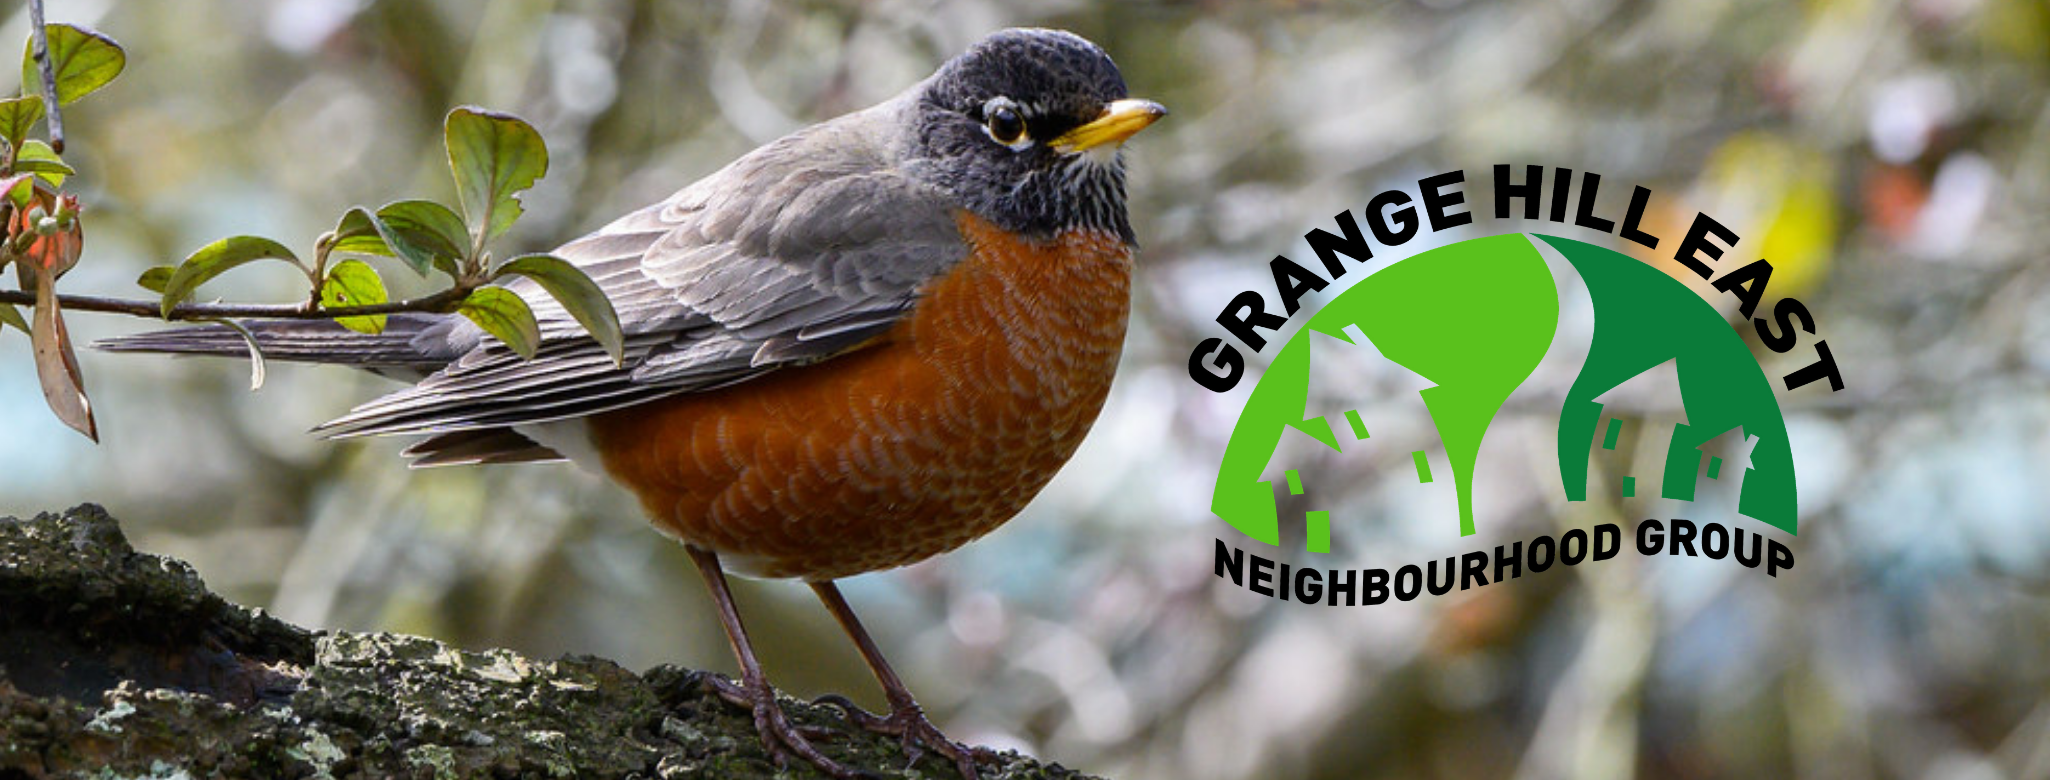 Spring web banner featuring an American Robin